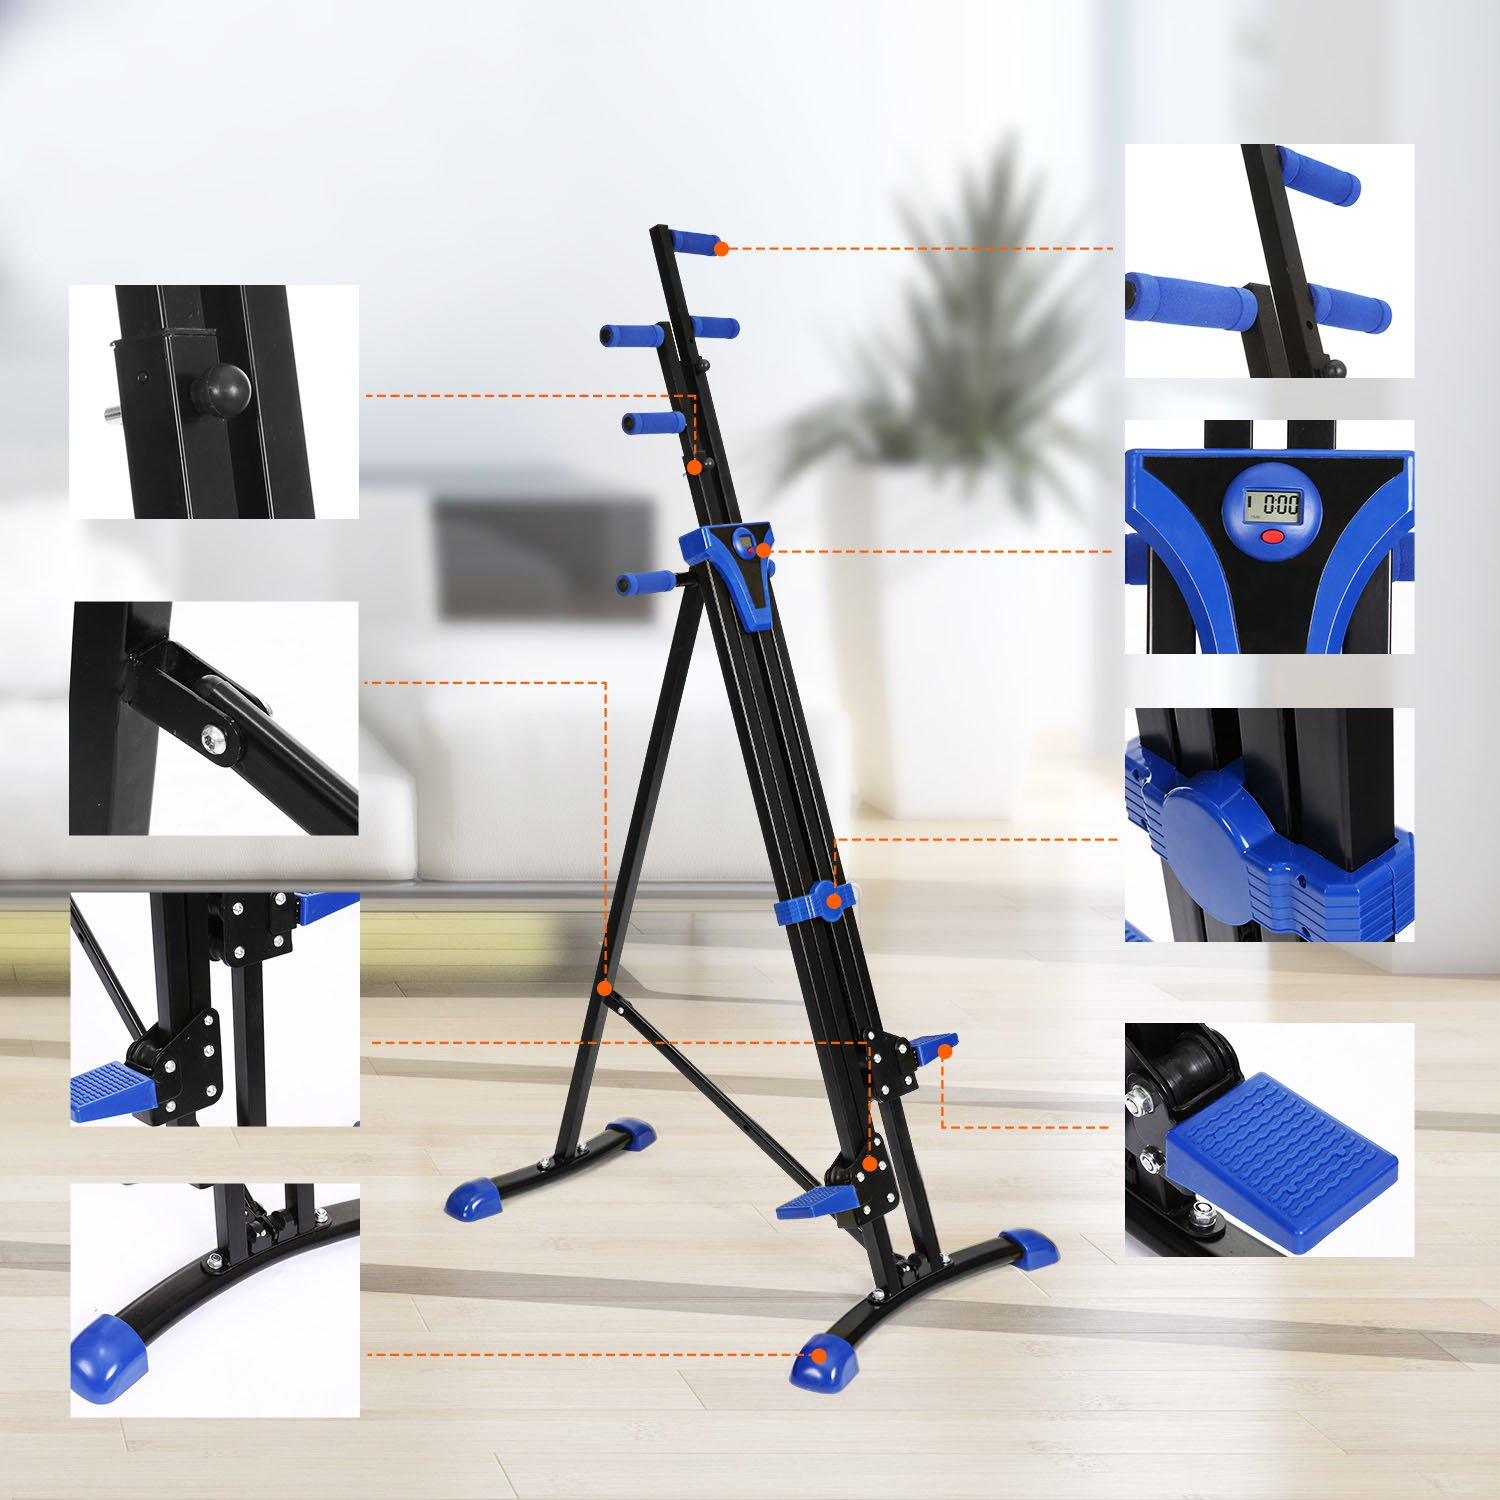 Dozenla Vertical Climber Stepper 2 In 1 Climbing Machine Exercise Fitness Foldable Stair Cardio Equipment [US Stock] by Dozenla (Image #3)